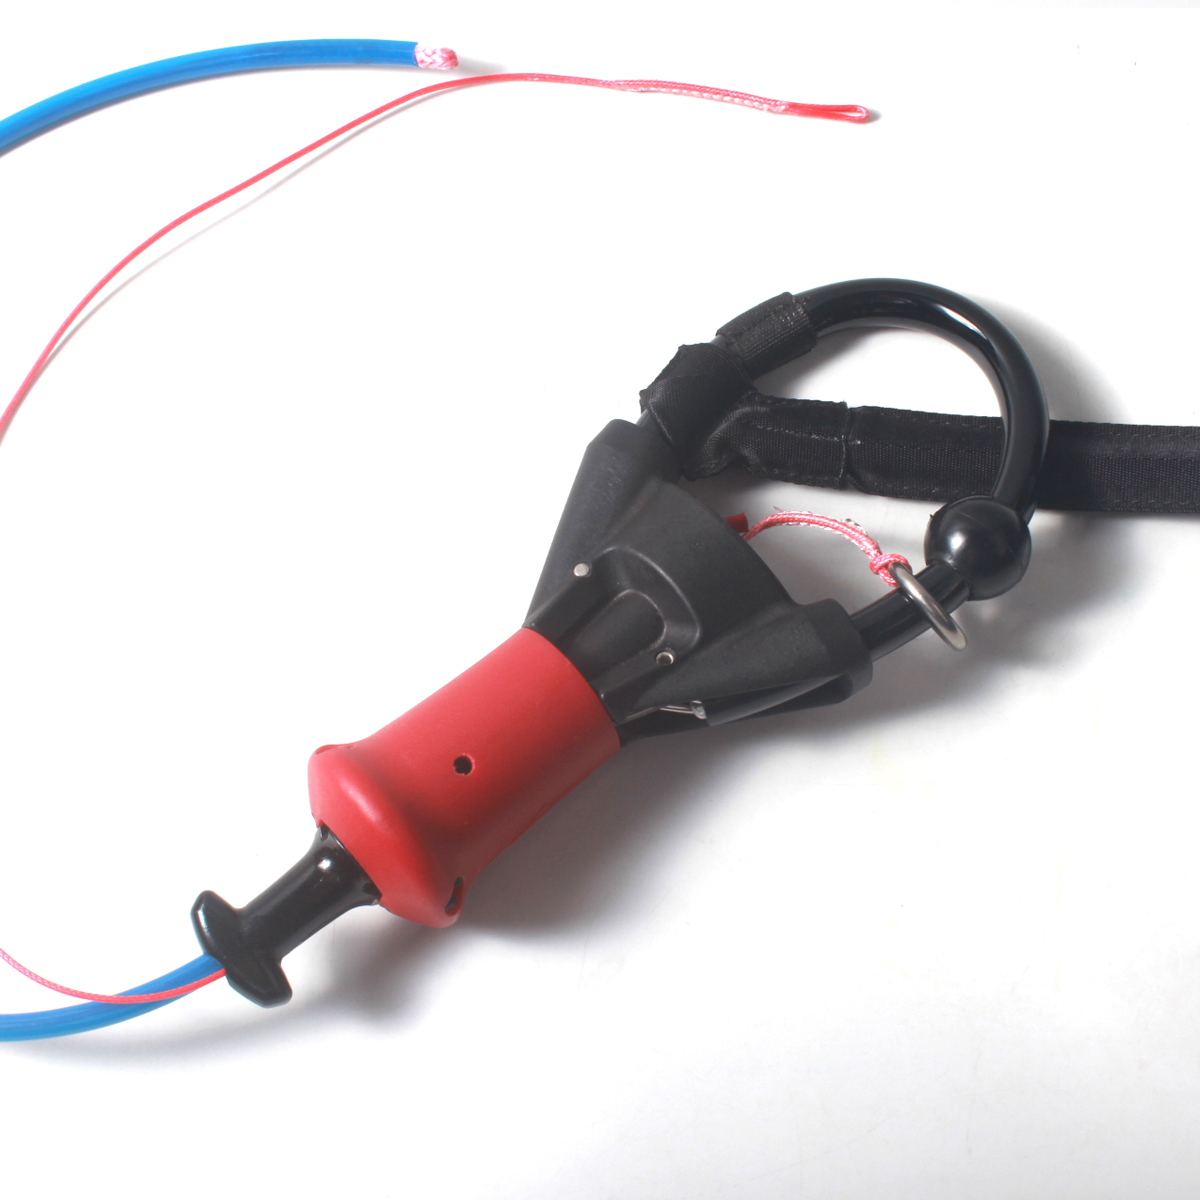 Quick Release Chicken Loop with Spectra Line for Kitesurfing Kite